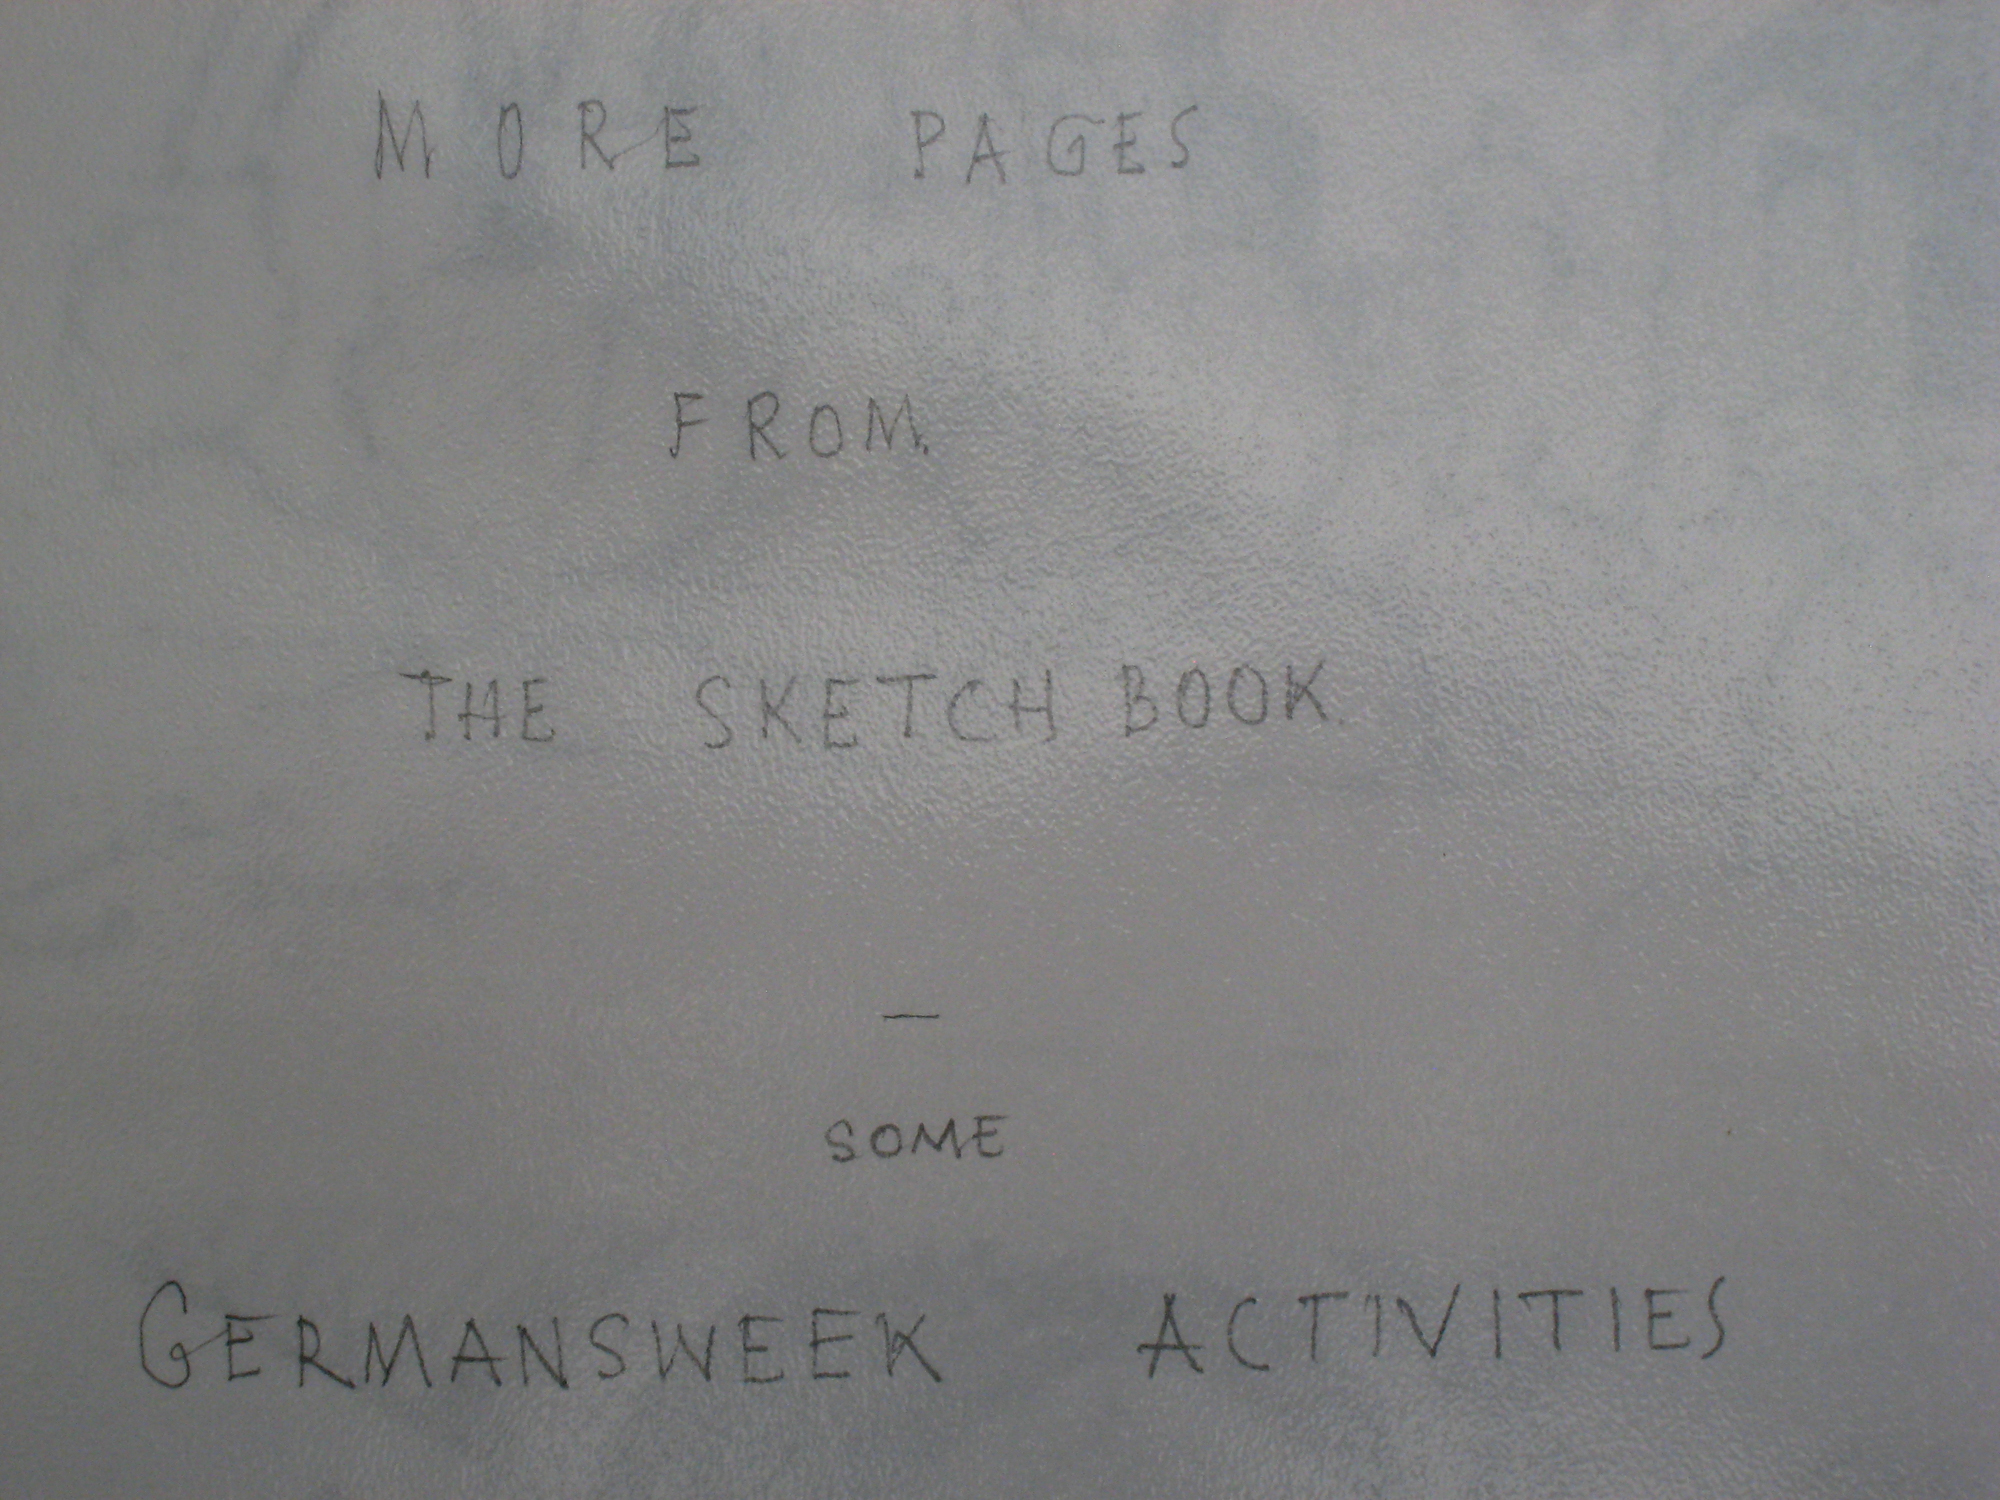 'More pages from the sketchbook, some Germansweek activities'